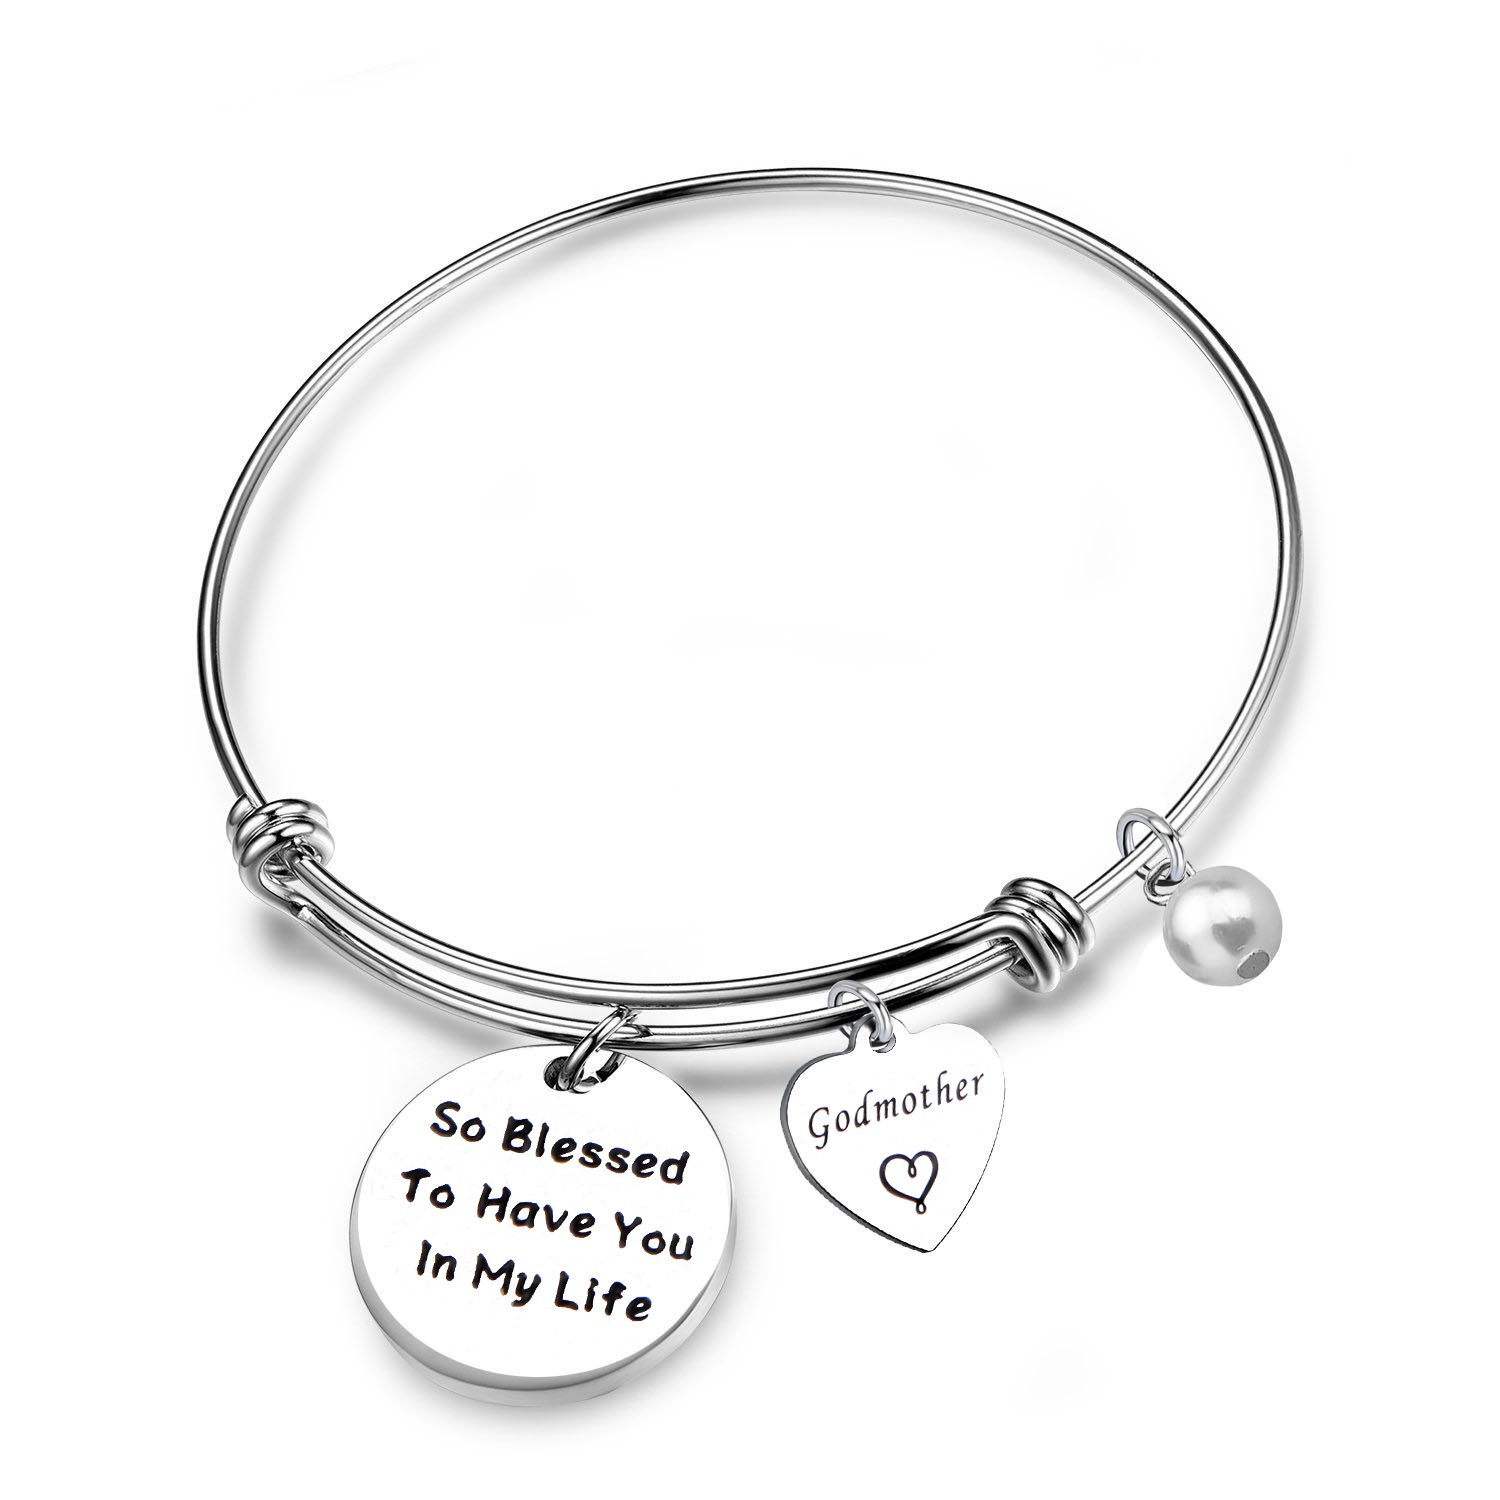 RQIER Godmother Gifts Godmother Bracelet So Blessed to Have You in My Life Expandable Wire Bangle Religious Jewelry Baptism Gift(so Blessed.)